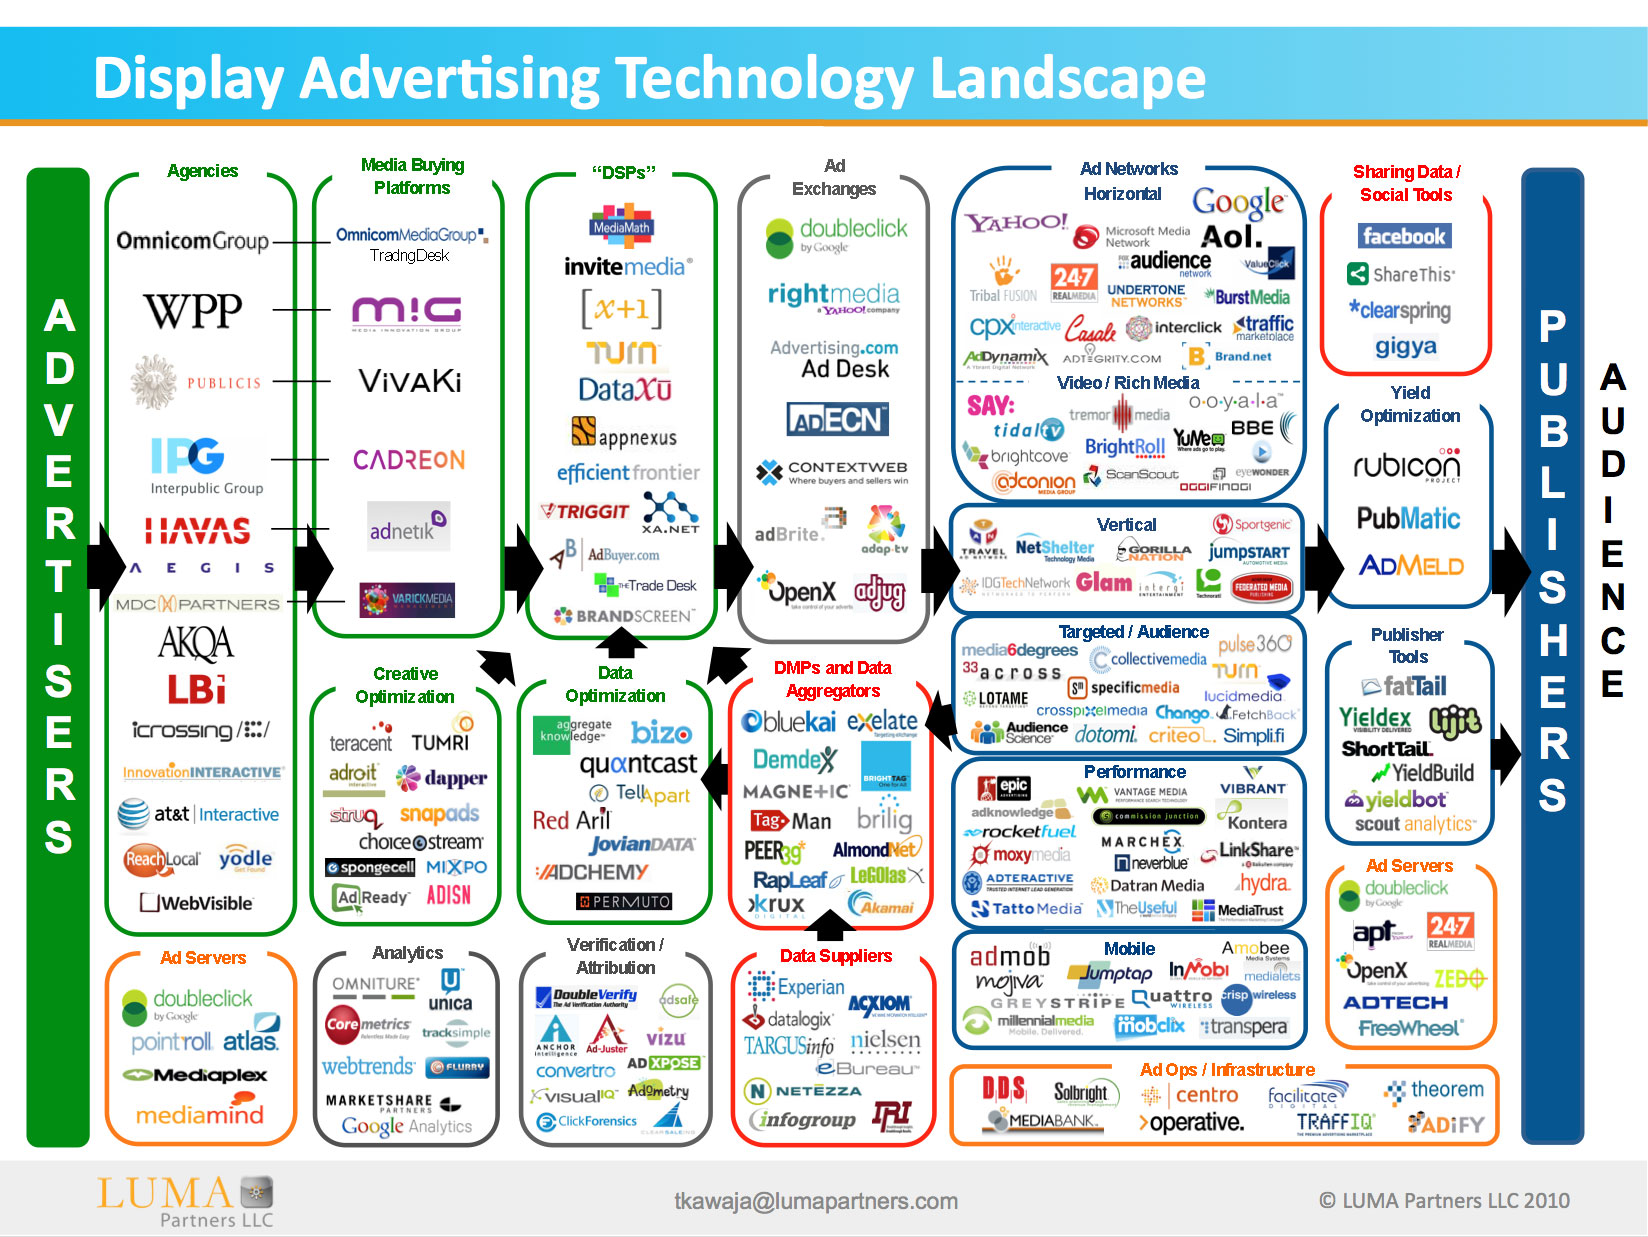 How Many Technology Companies Are There in the US?